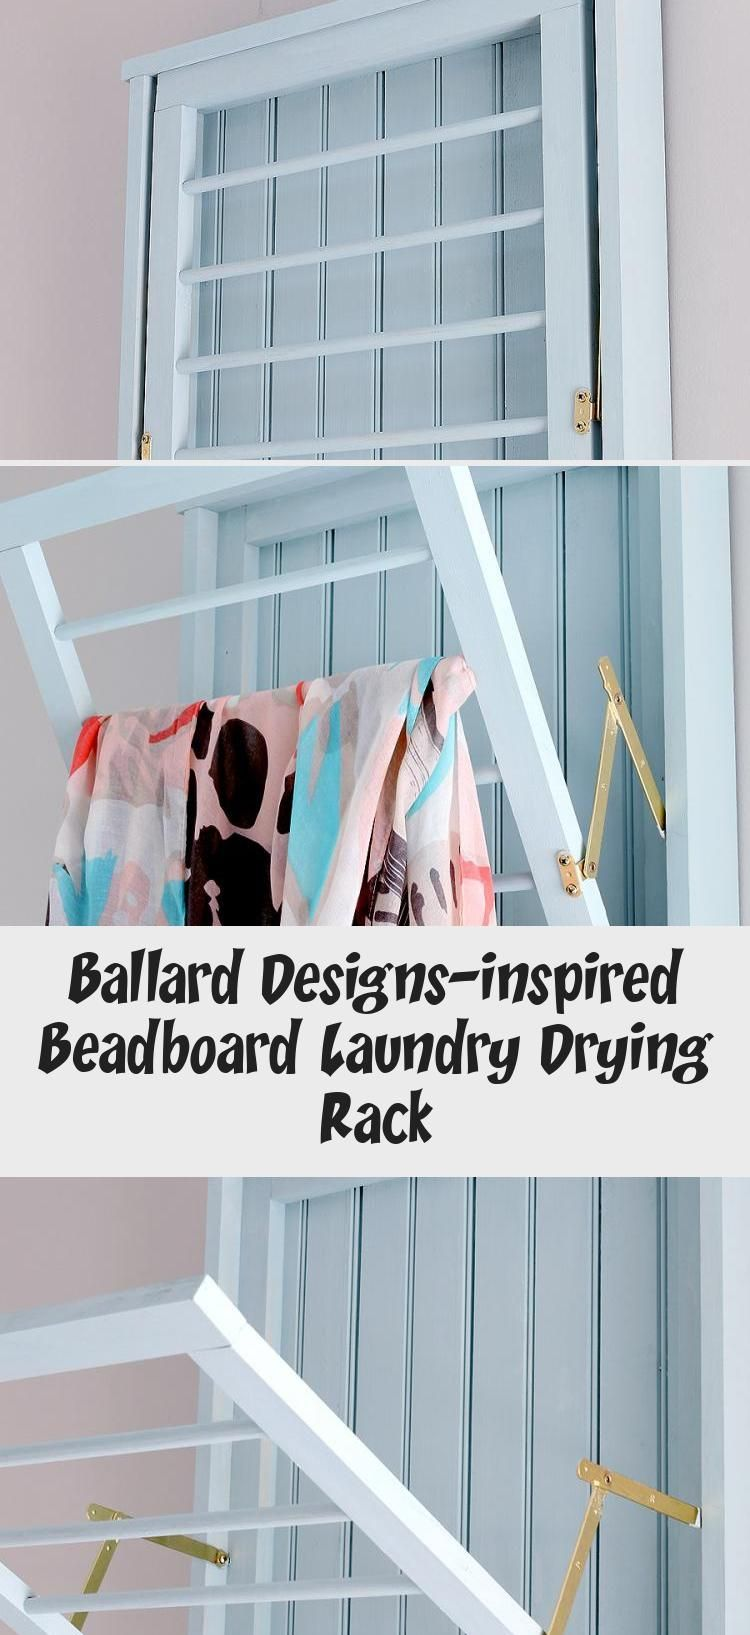 How To Build A Diy Ballard Designs Laundry Drying Rack Graylaundryroom Bluelau In 2020 Drying Rack Laundry Laundry Drying Laundry Room Layouts